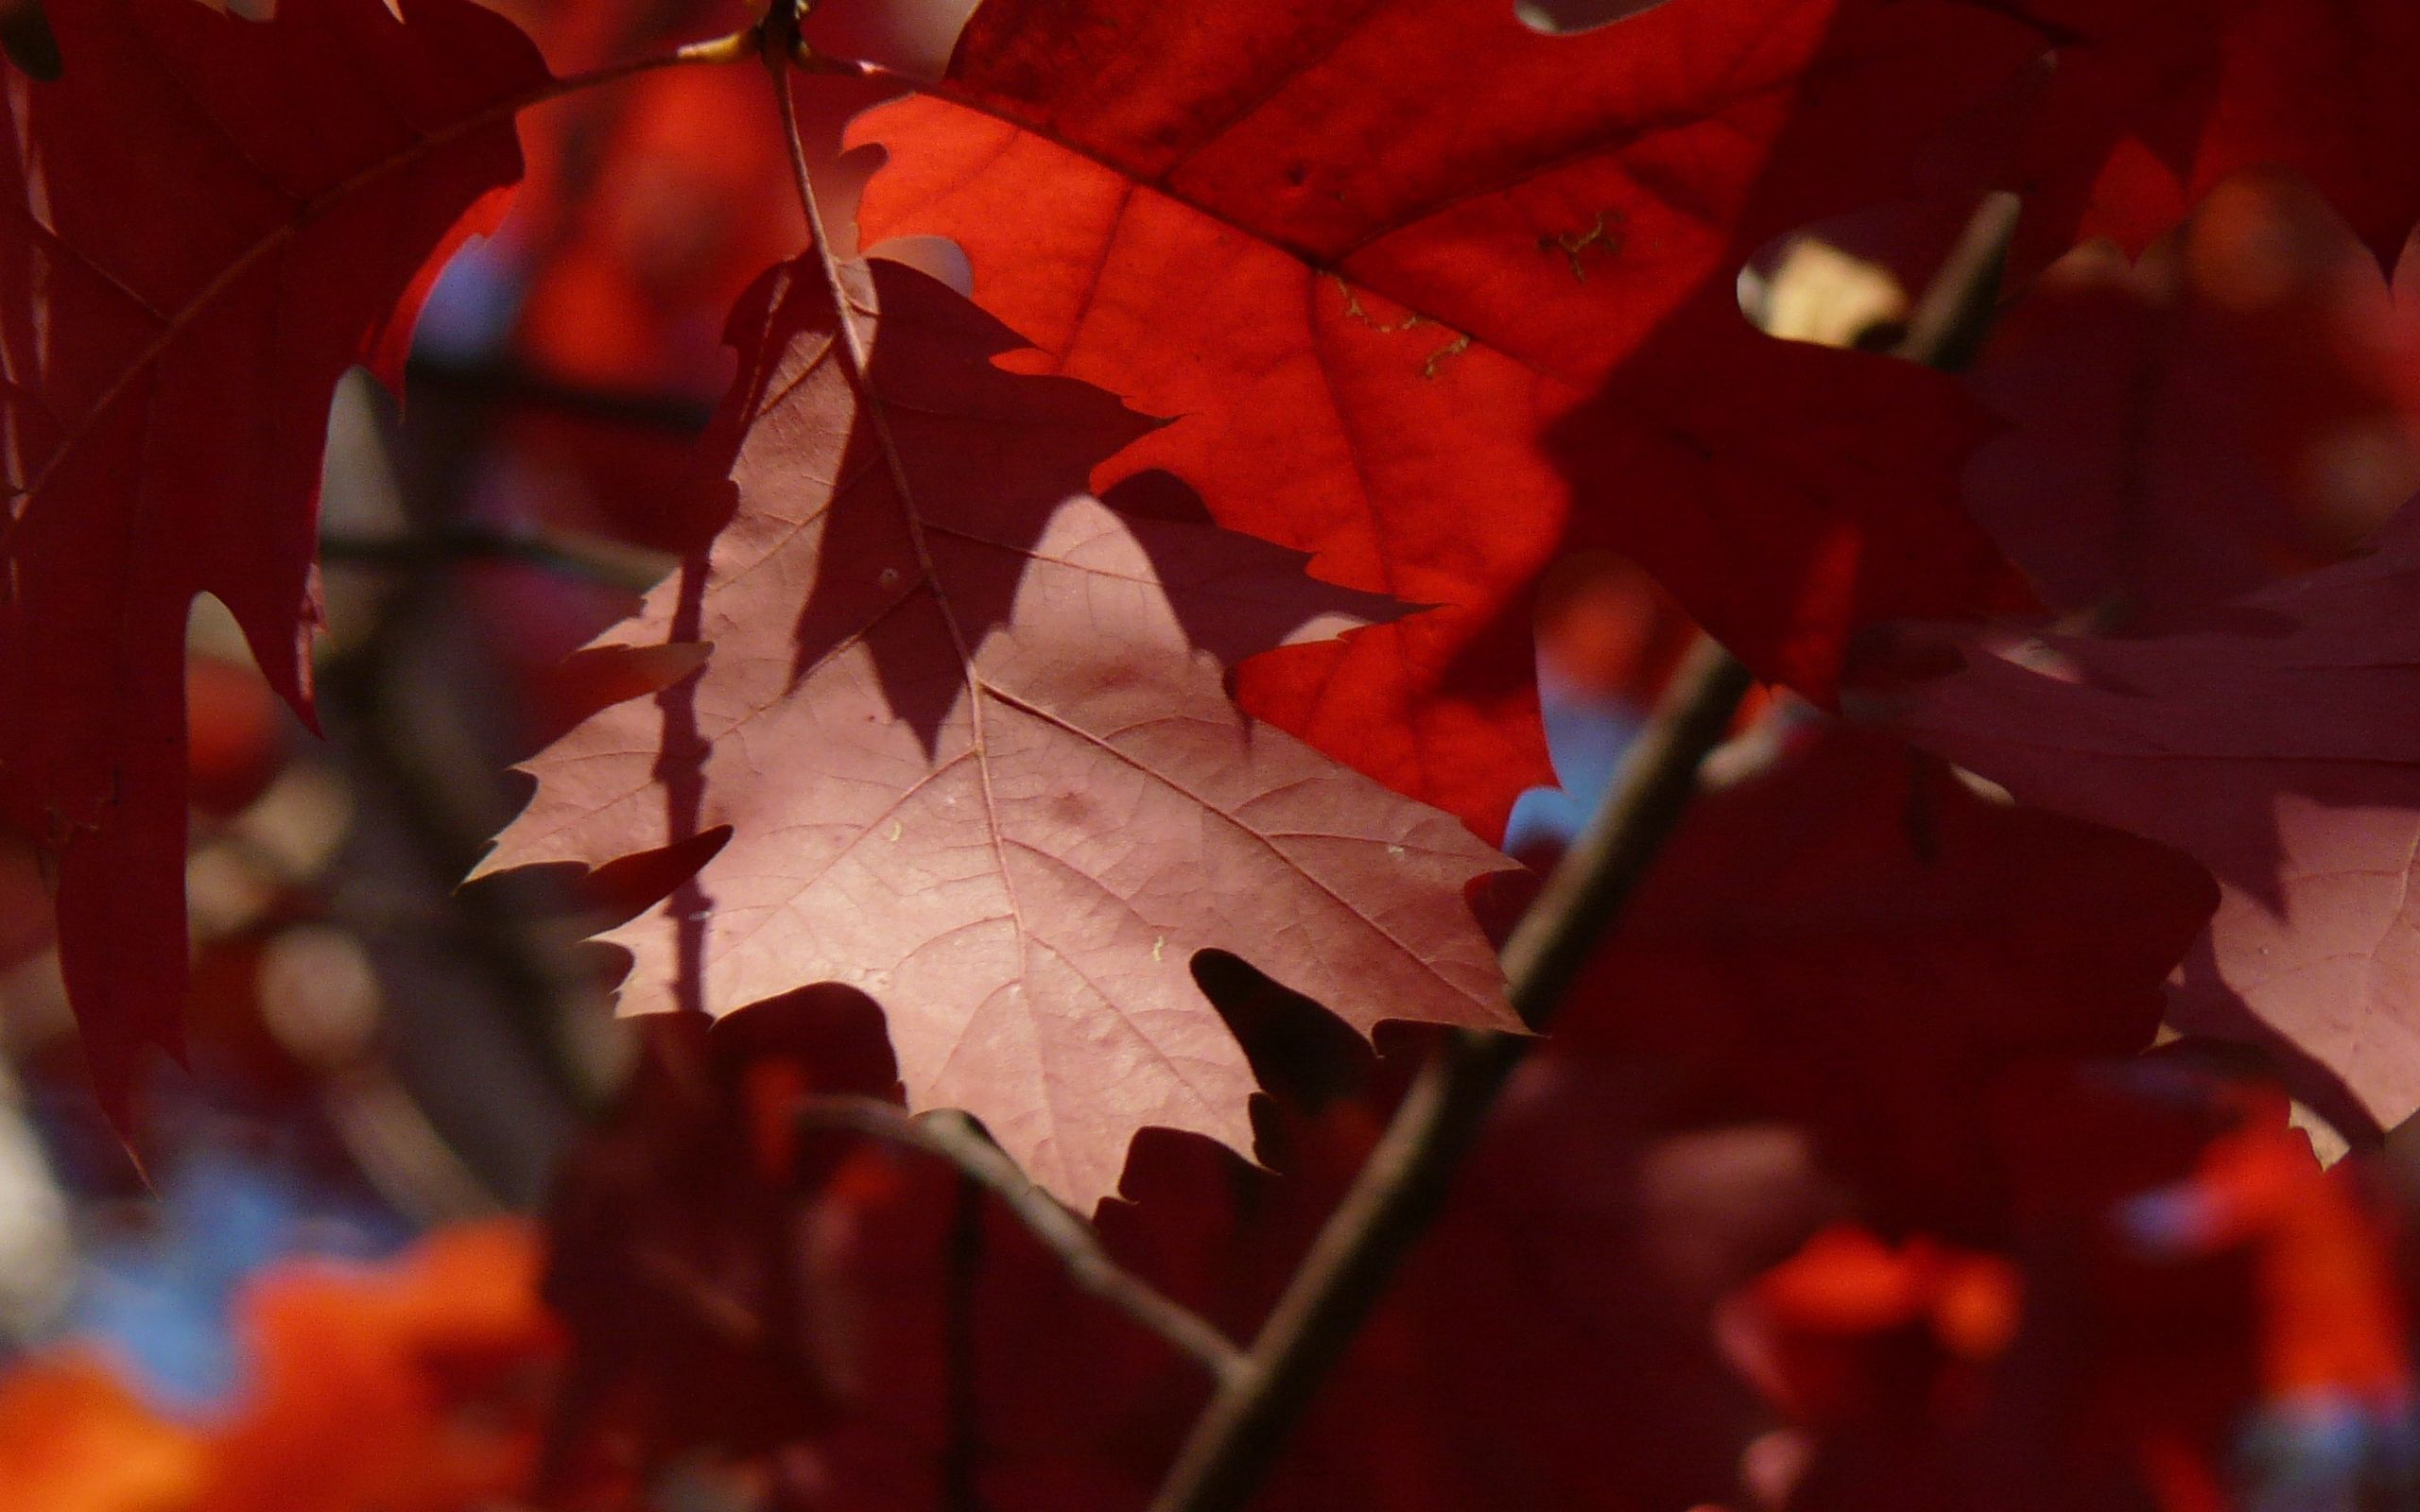 107002 download wallpaper Macro, Maple, Leaves, Autumn screensavers and pictures for free